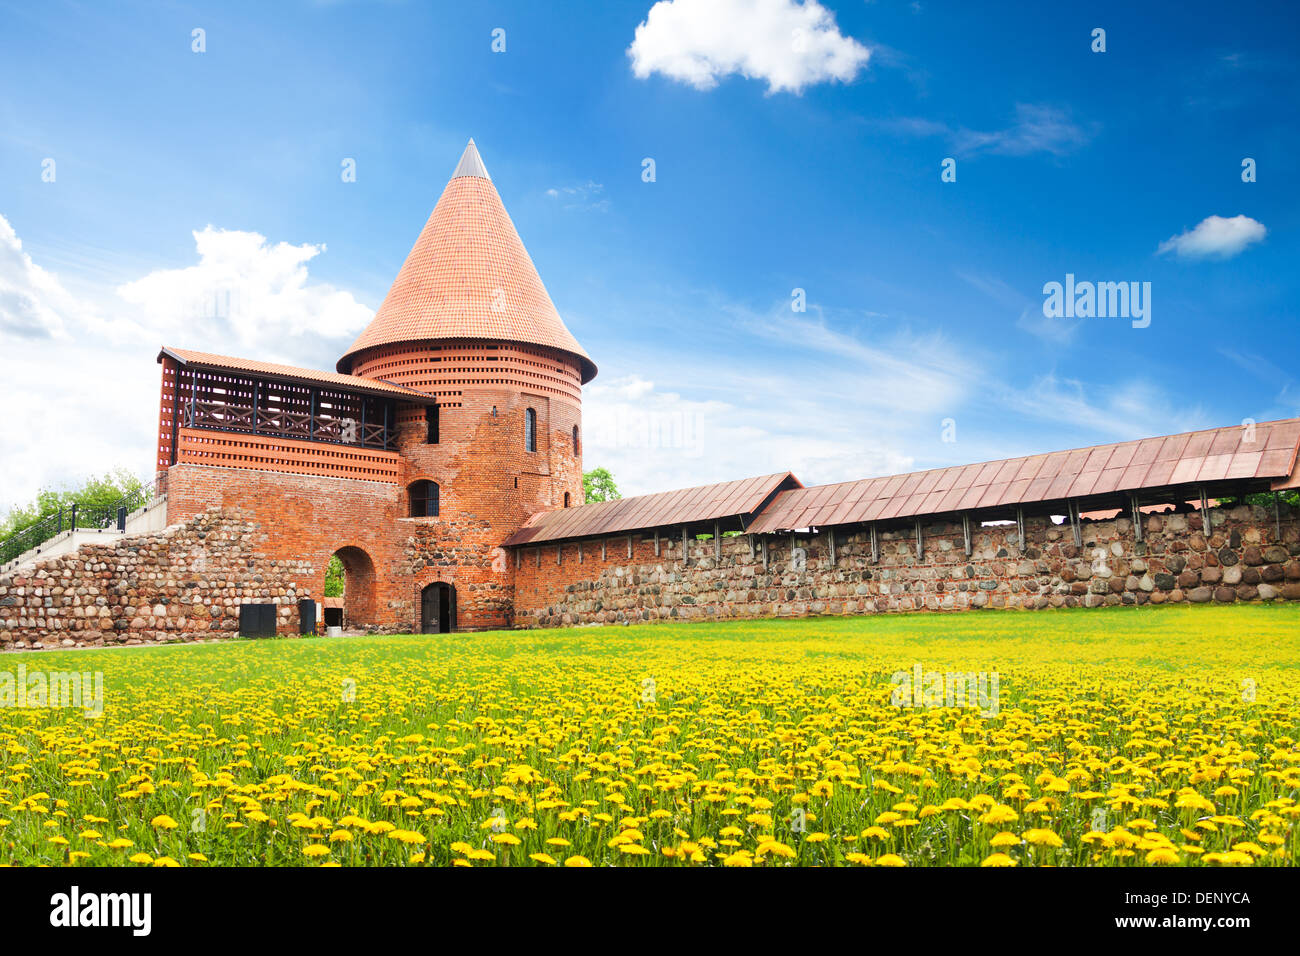 Inner yard of remaining parts of castle in Kaunas town on the west of Lithuania - Stock Image